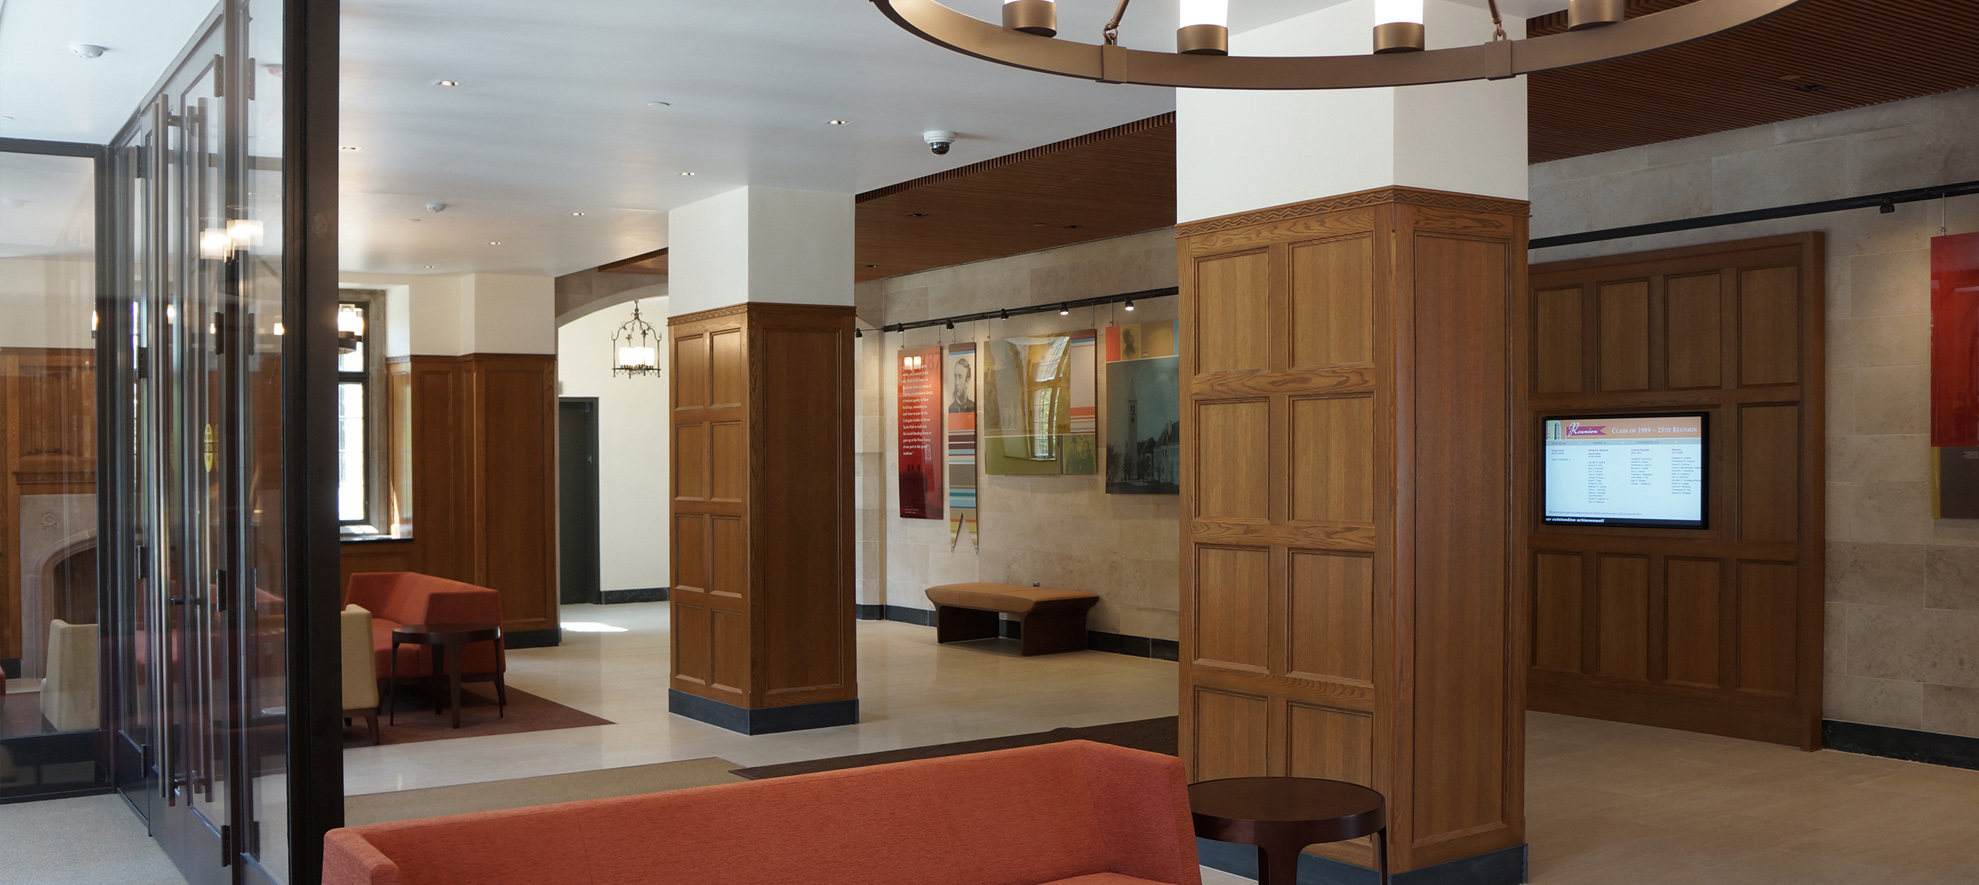 sp_950x425 - Sorensen - Cornell Law School - New Lobby - with ABA - (Sorensen, photo)